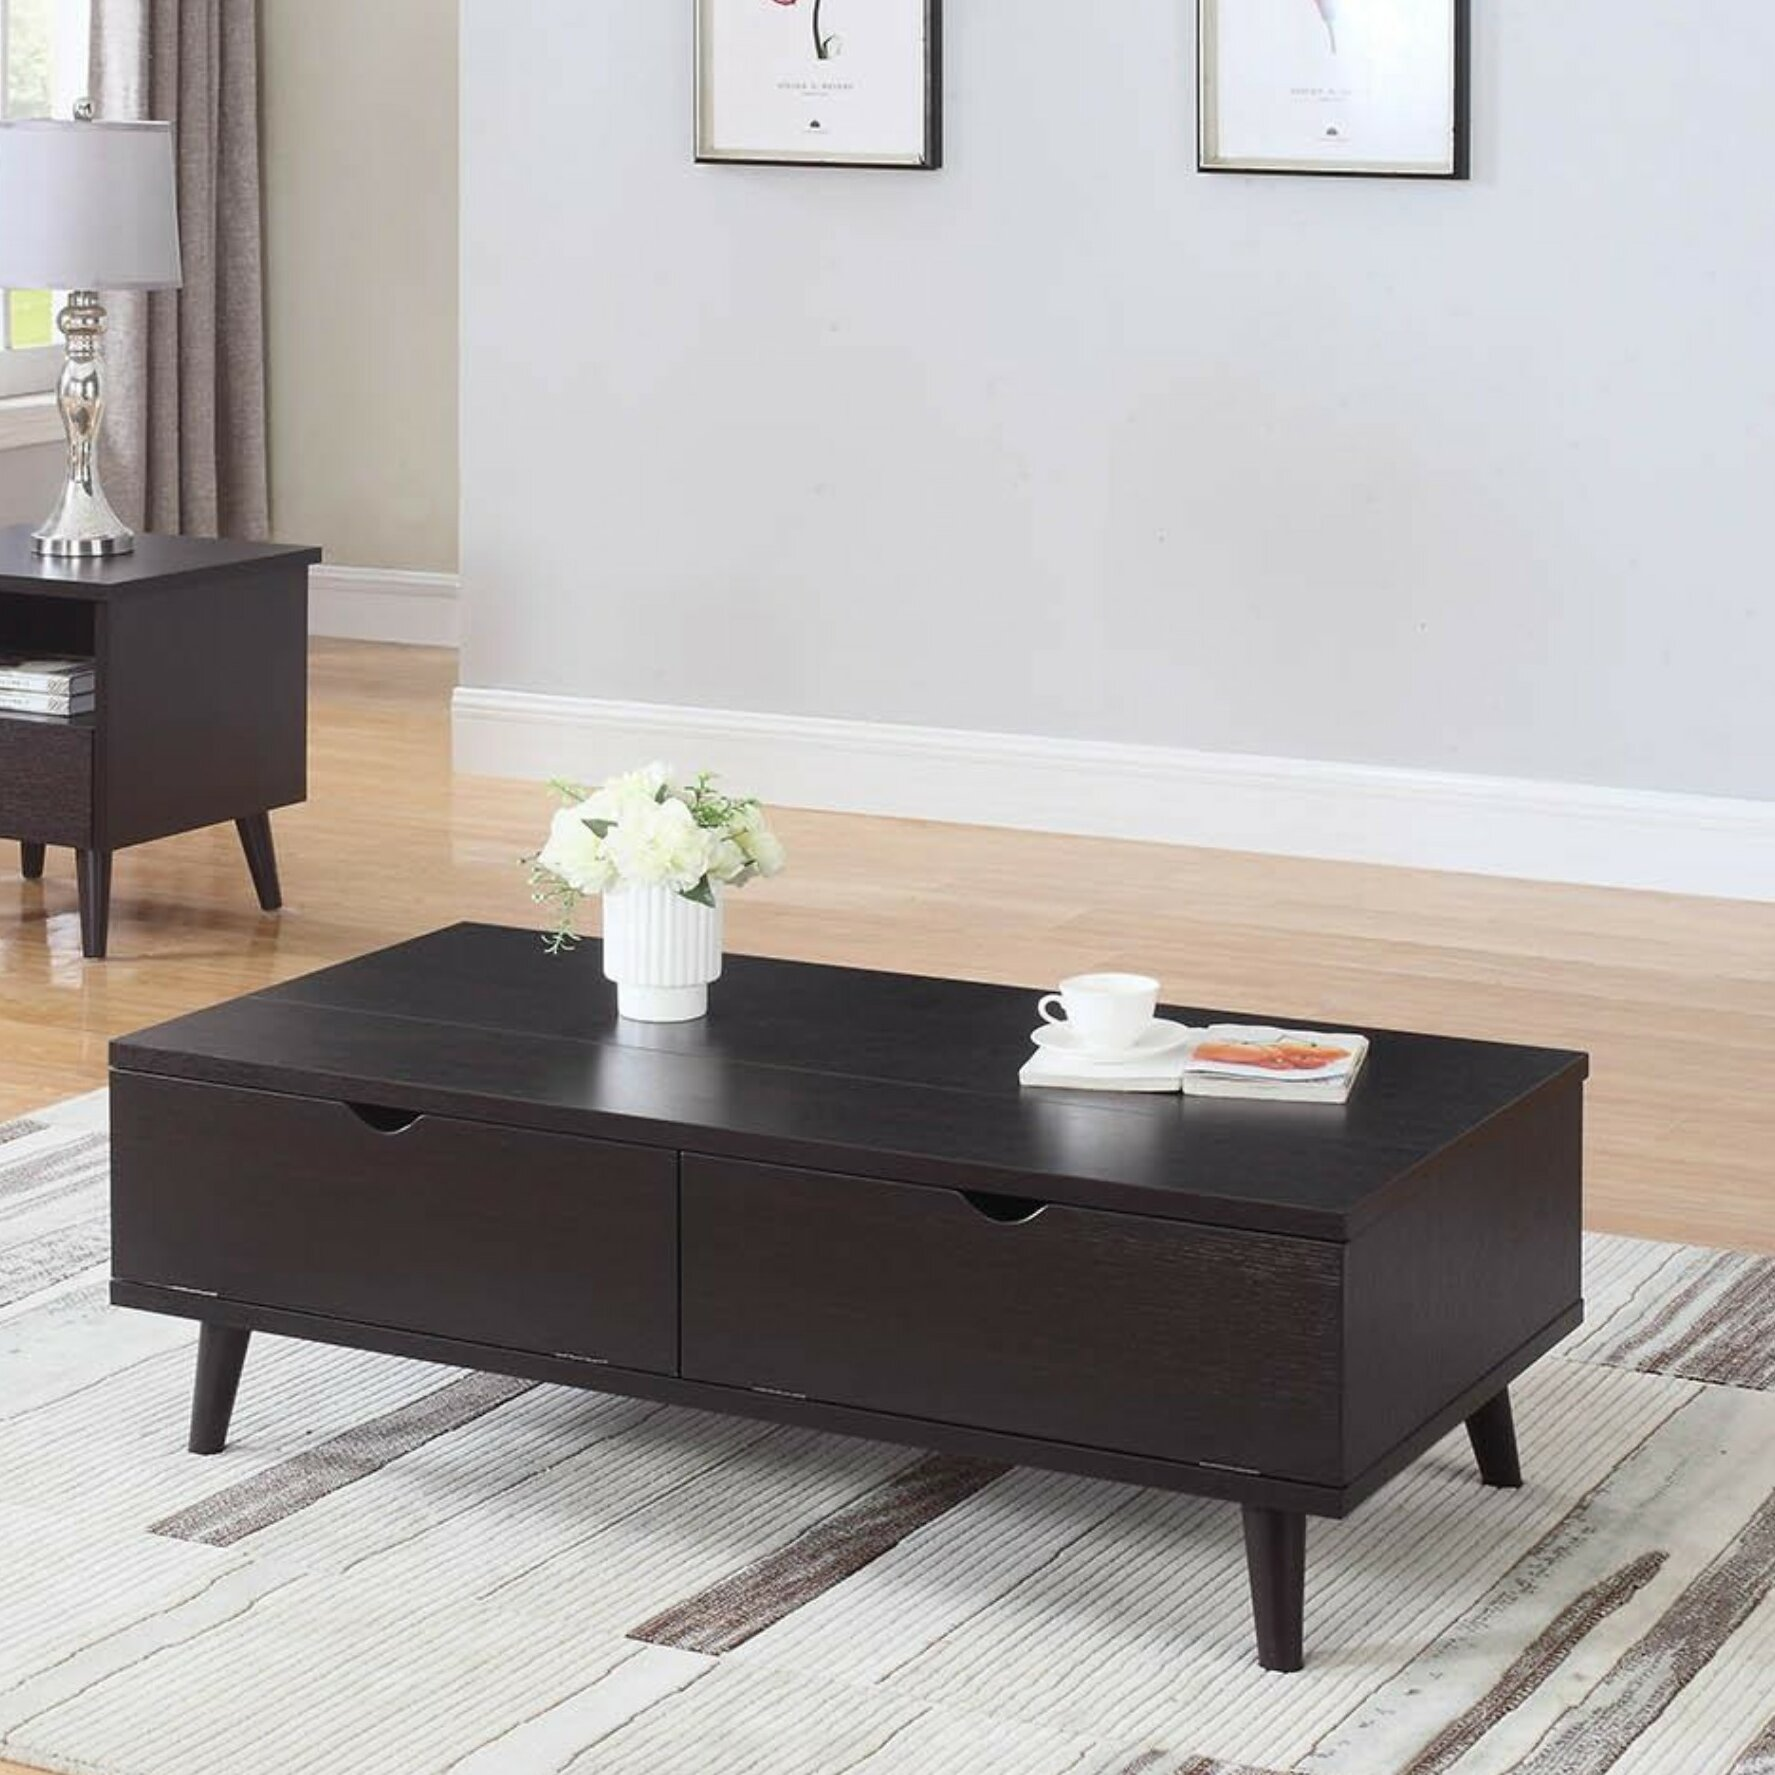 George Oliver Bueno Modern Lift Top Wooden Coffee Table With Storage Wayfair